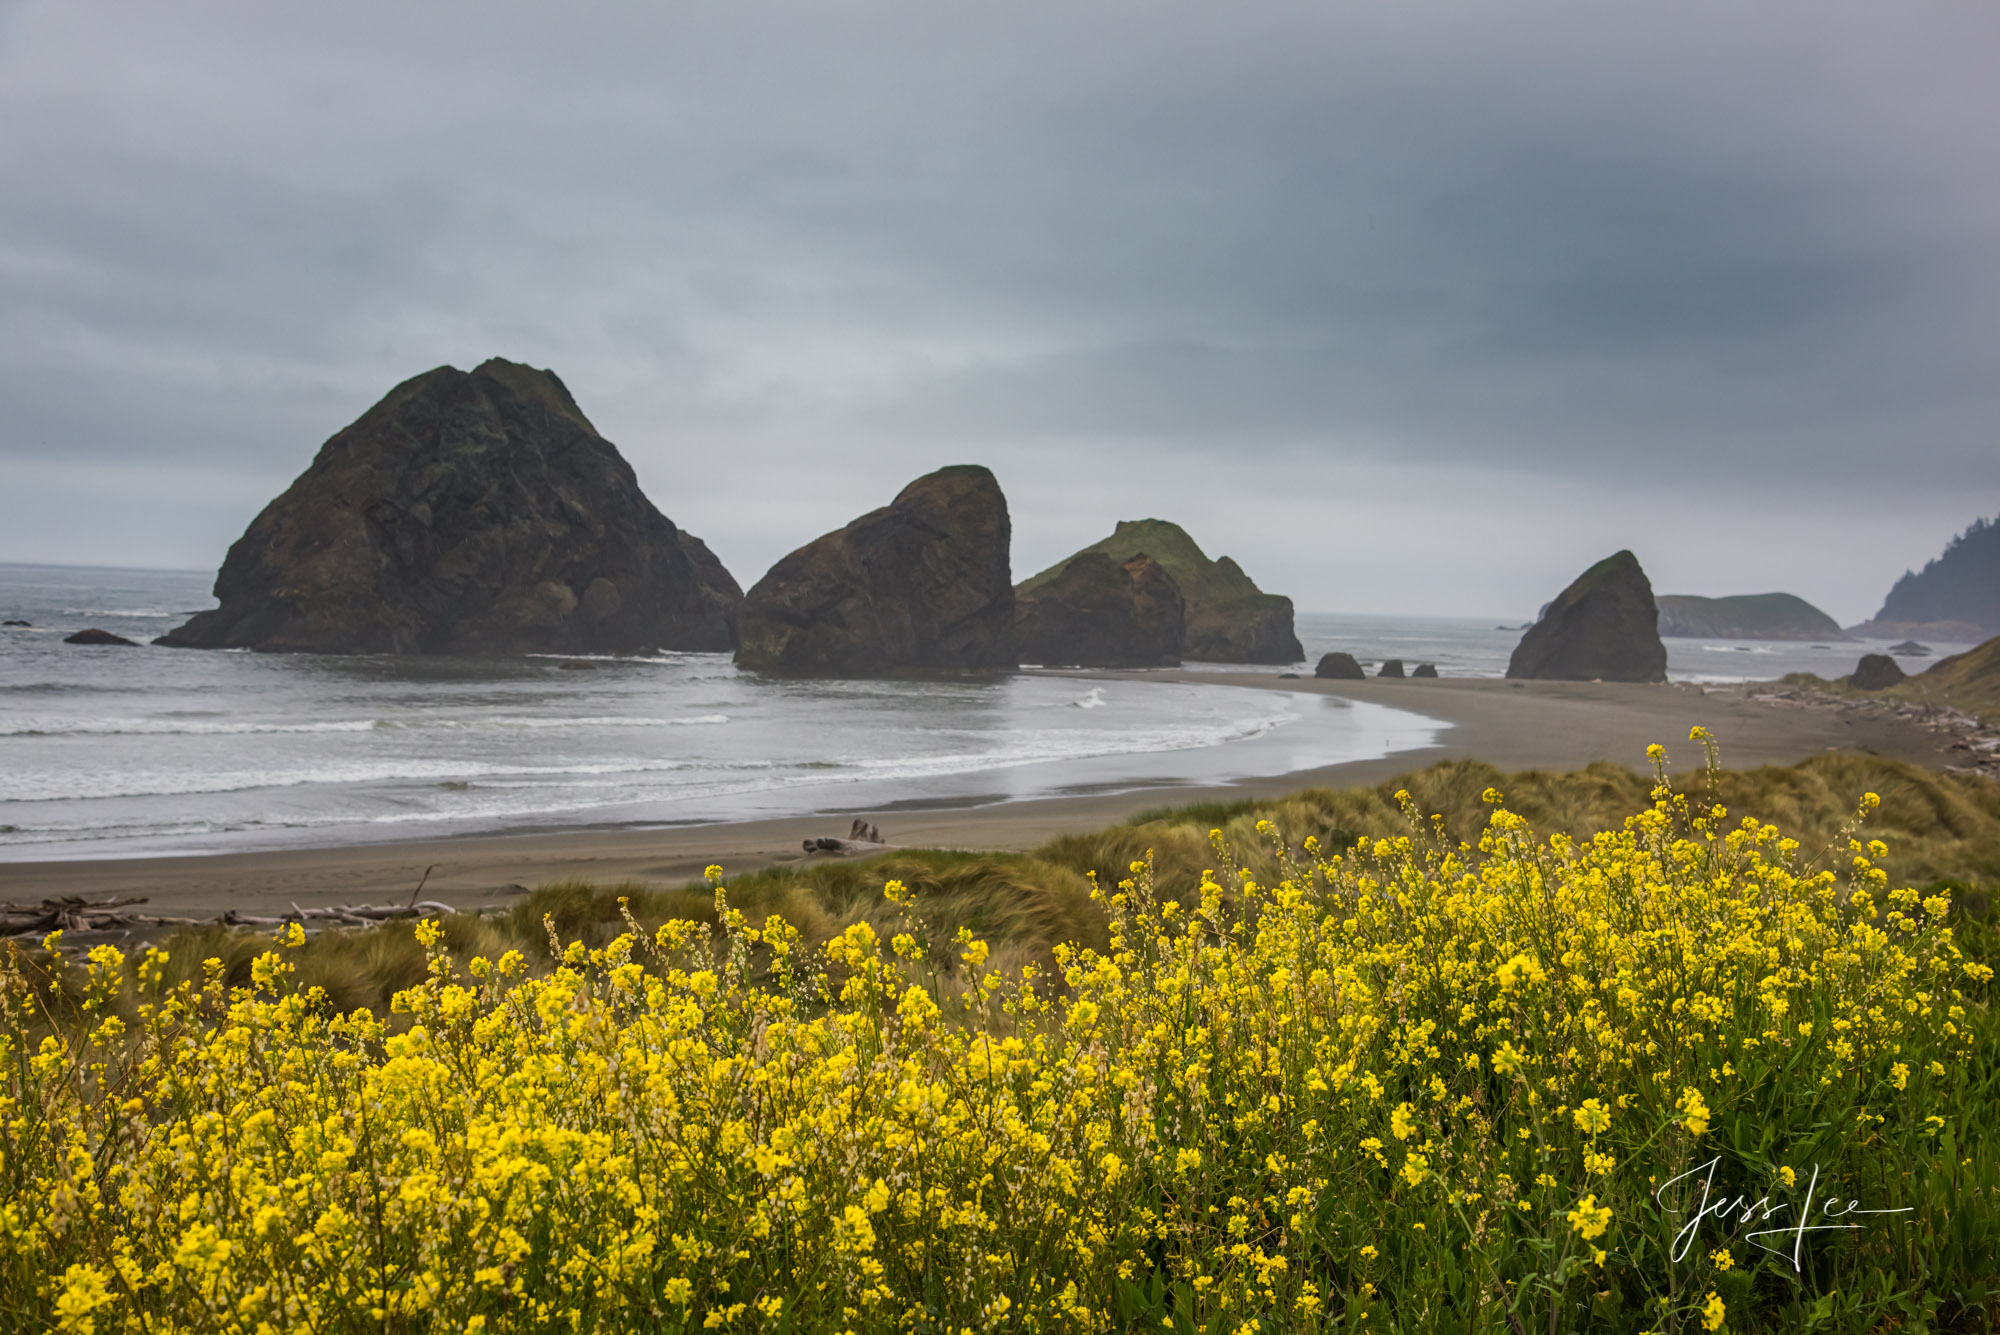 Fine Art Limited Edition Photography of Oregon. Oregon Seascape beaches.This is part of the luxurious collection of fine art...